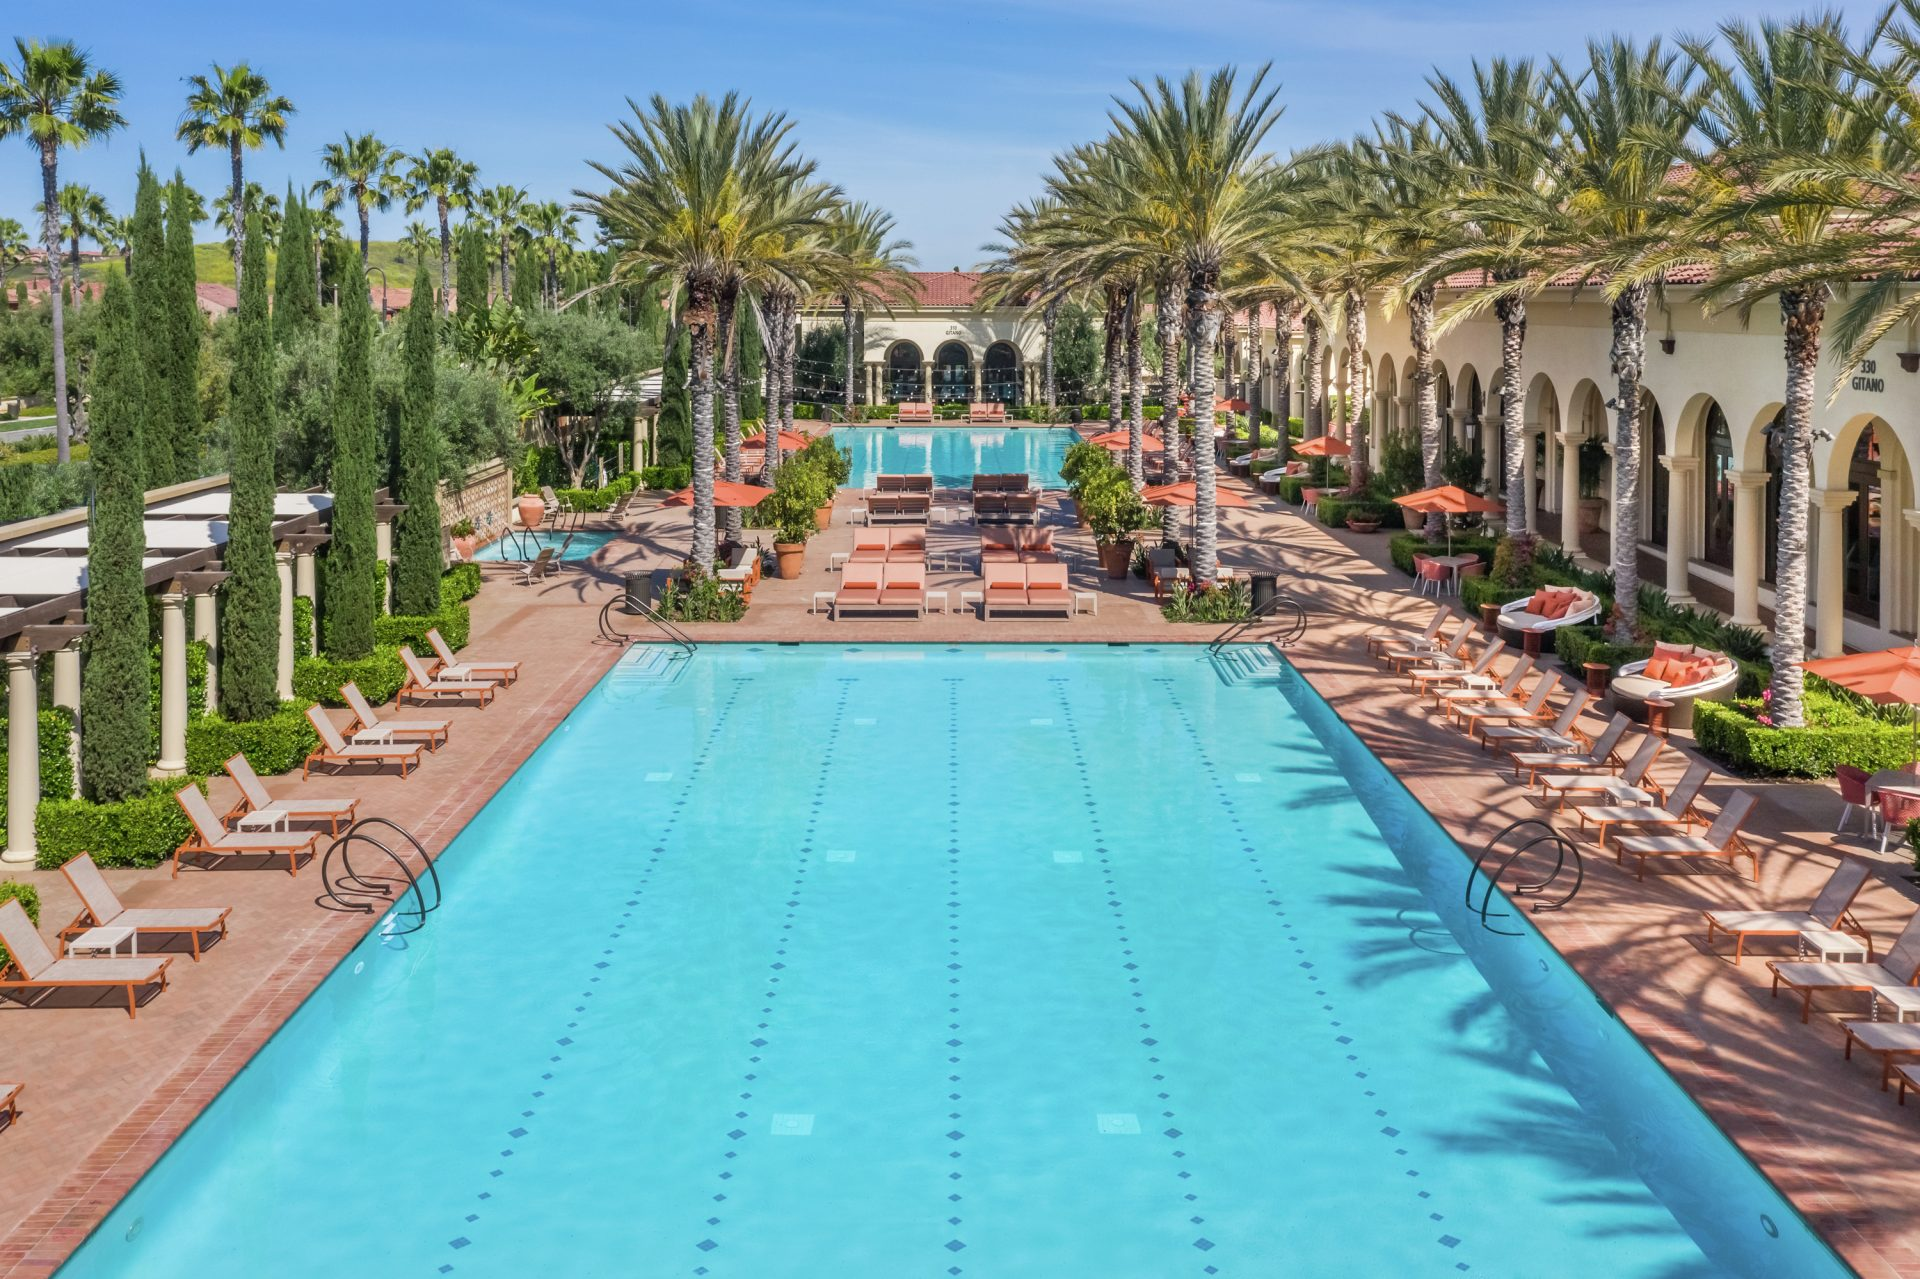 View of the pool at Los Olivos Apartment Village. Lamb 2013.